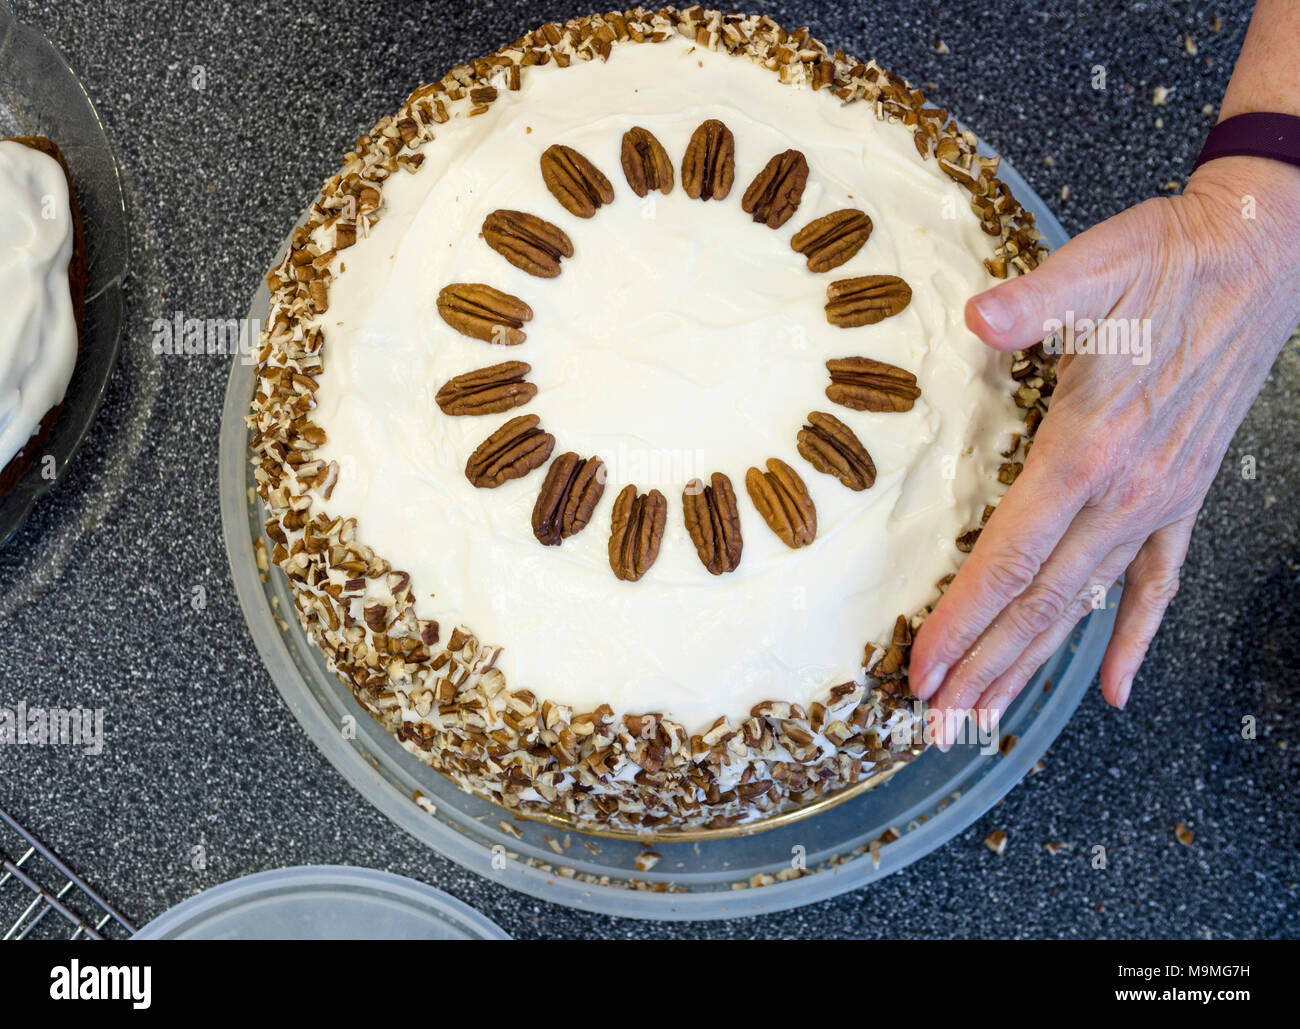 Icing A Carrot Cake For Ruths 90th Birthday Pre Party Stock Photo